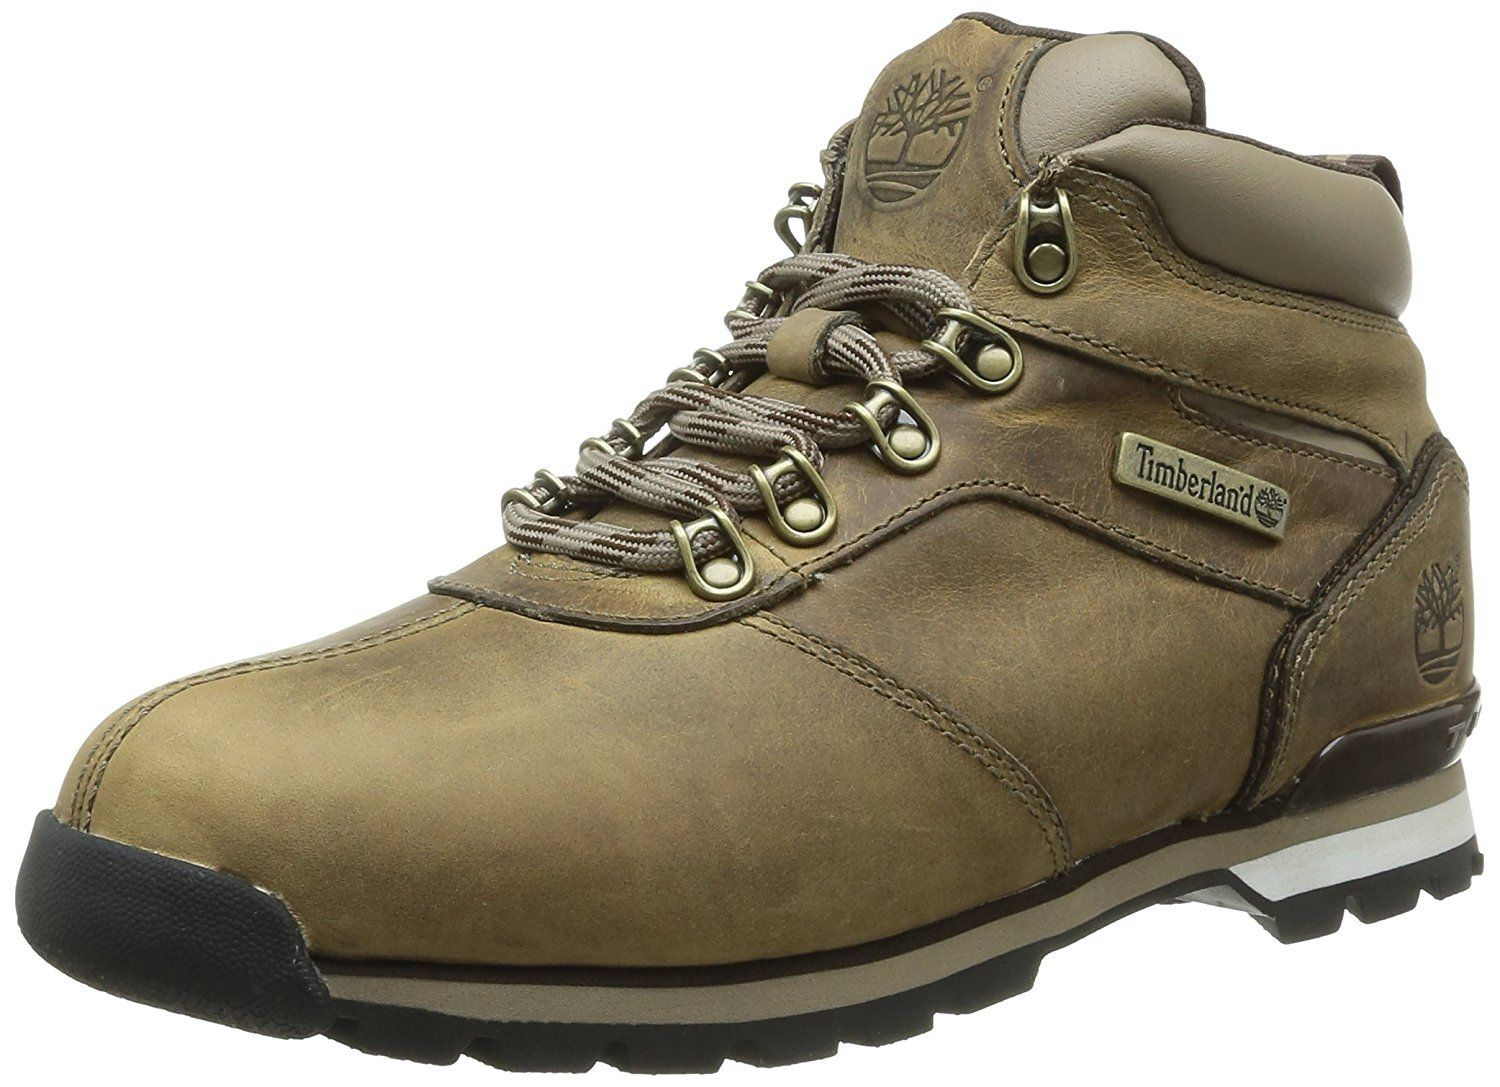 Splitrock 2, Bottes Chukka Homme, Marron (Wheat), 50 EUTimberland